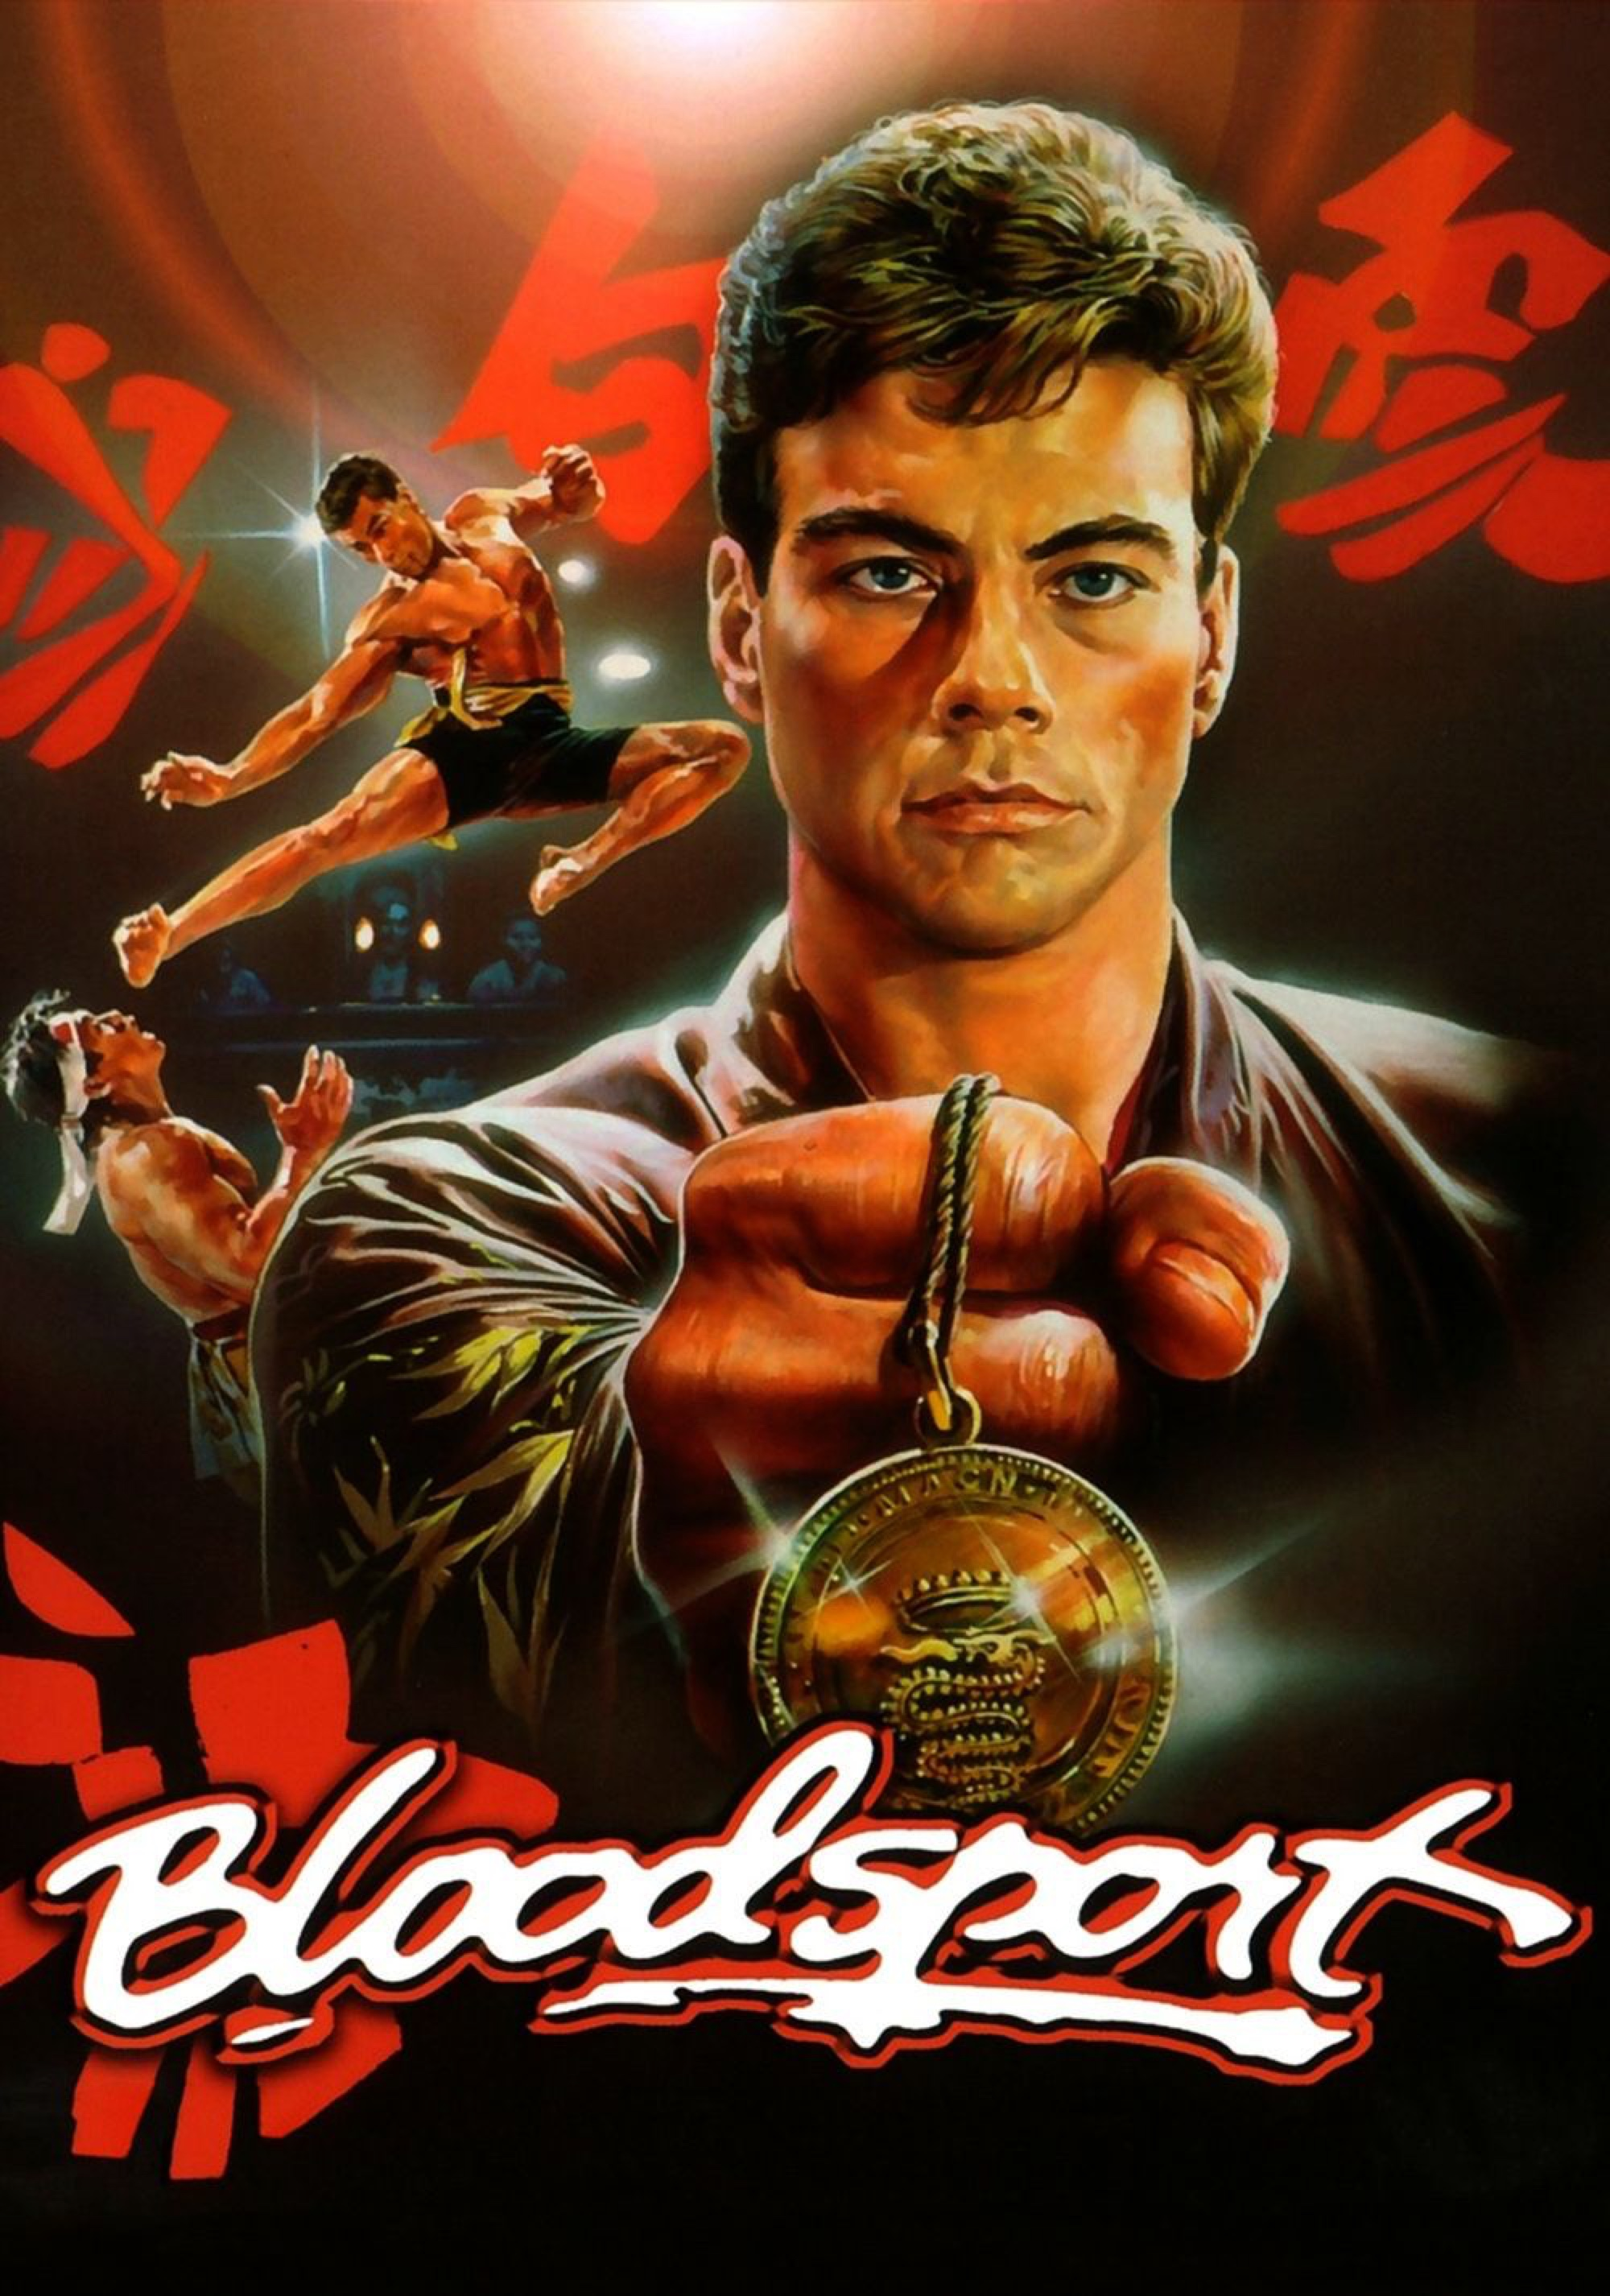 Bloodsport Oral History A Conversation With Frank Dux